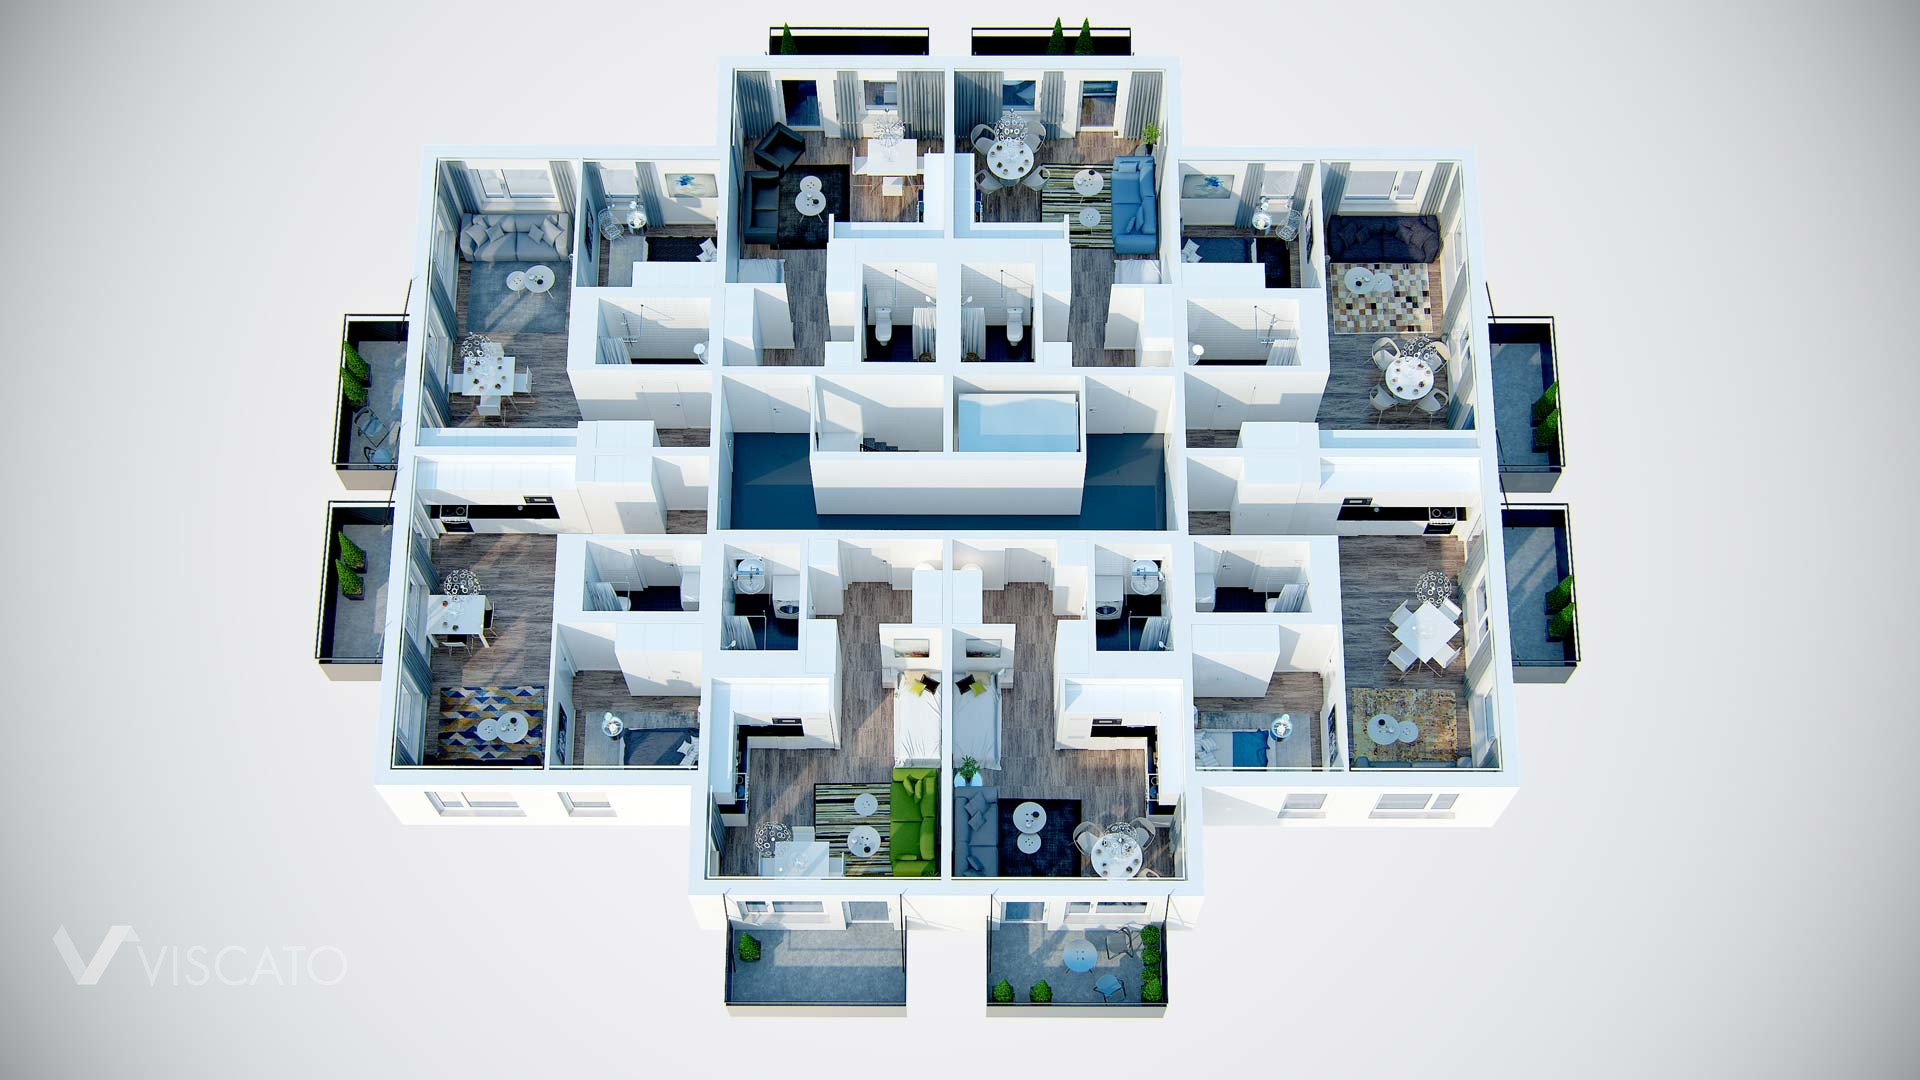 Floor plan of multi-familly housing located in sweden